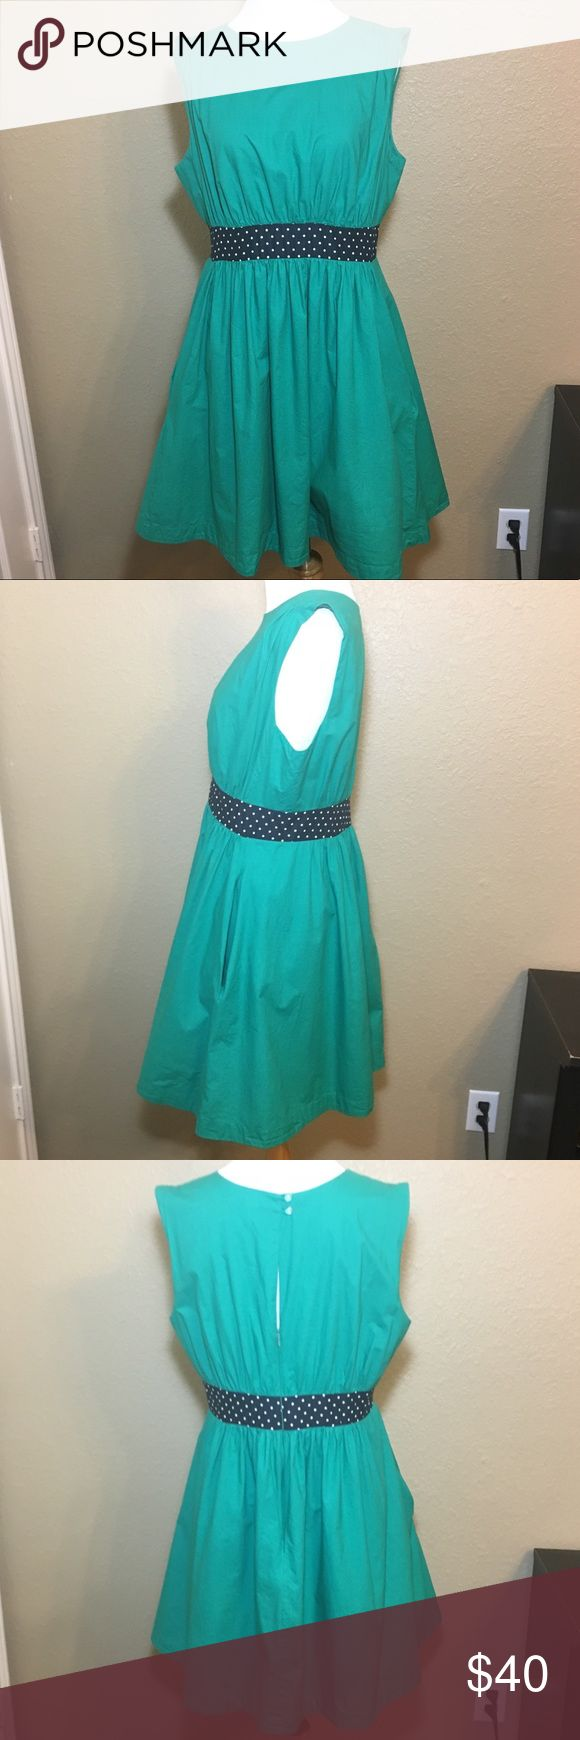 """Emily and Fin green Lucy dress with pockets large Bust 18"""", waist 16"""", length 35"""". 100% cotton. Small hole on the back left of the buttons. Modcloth Dresses"""